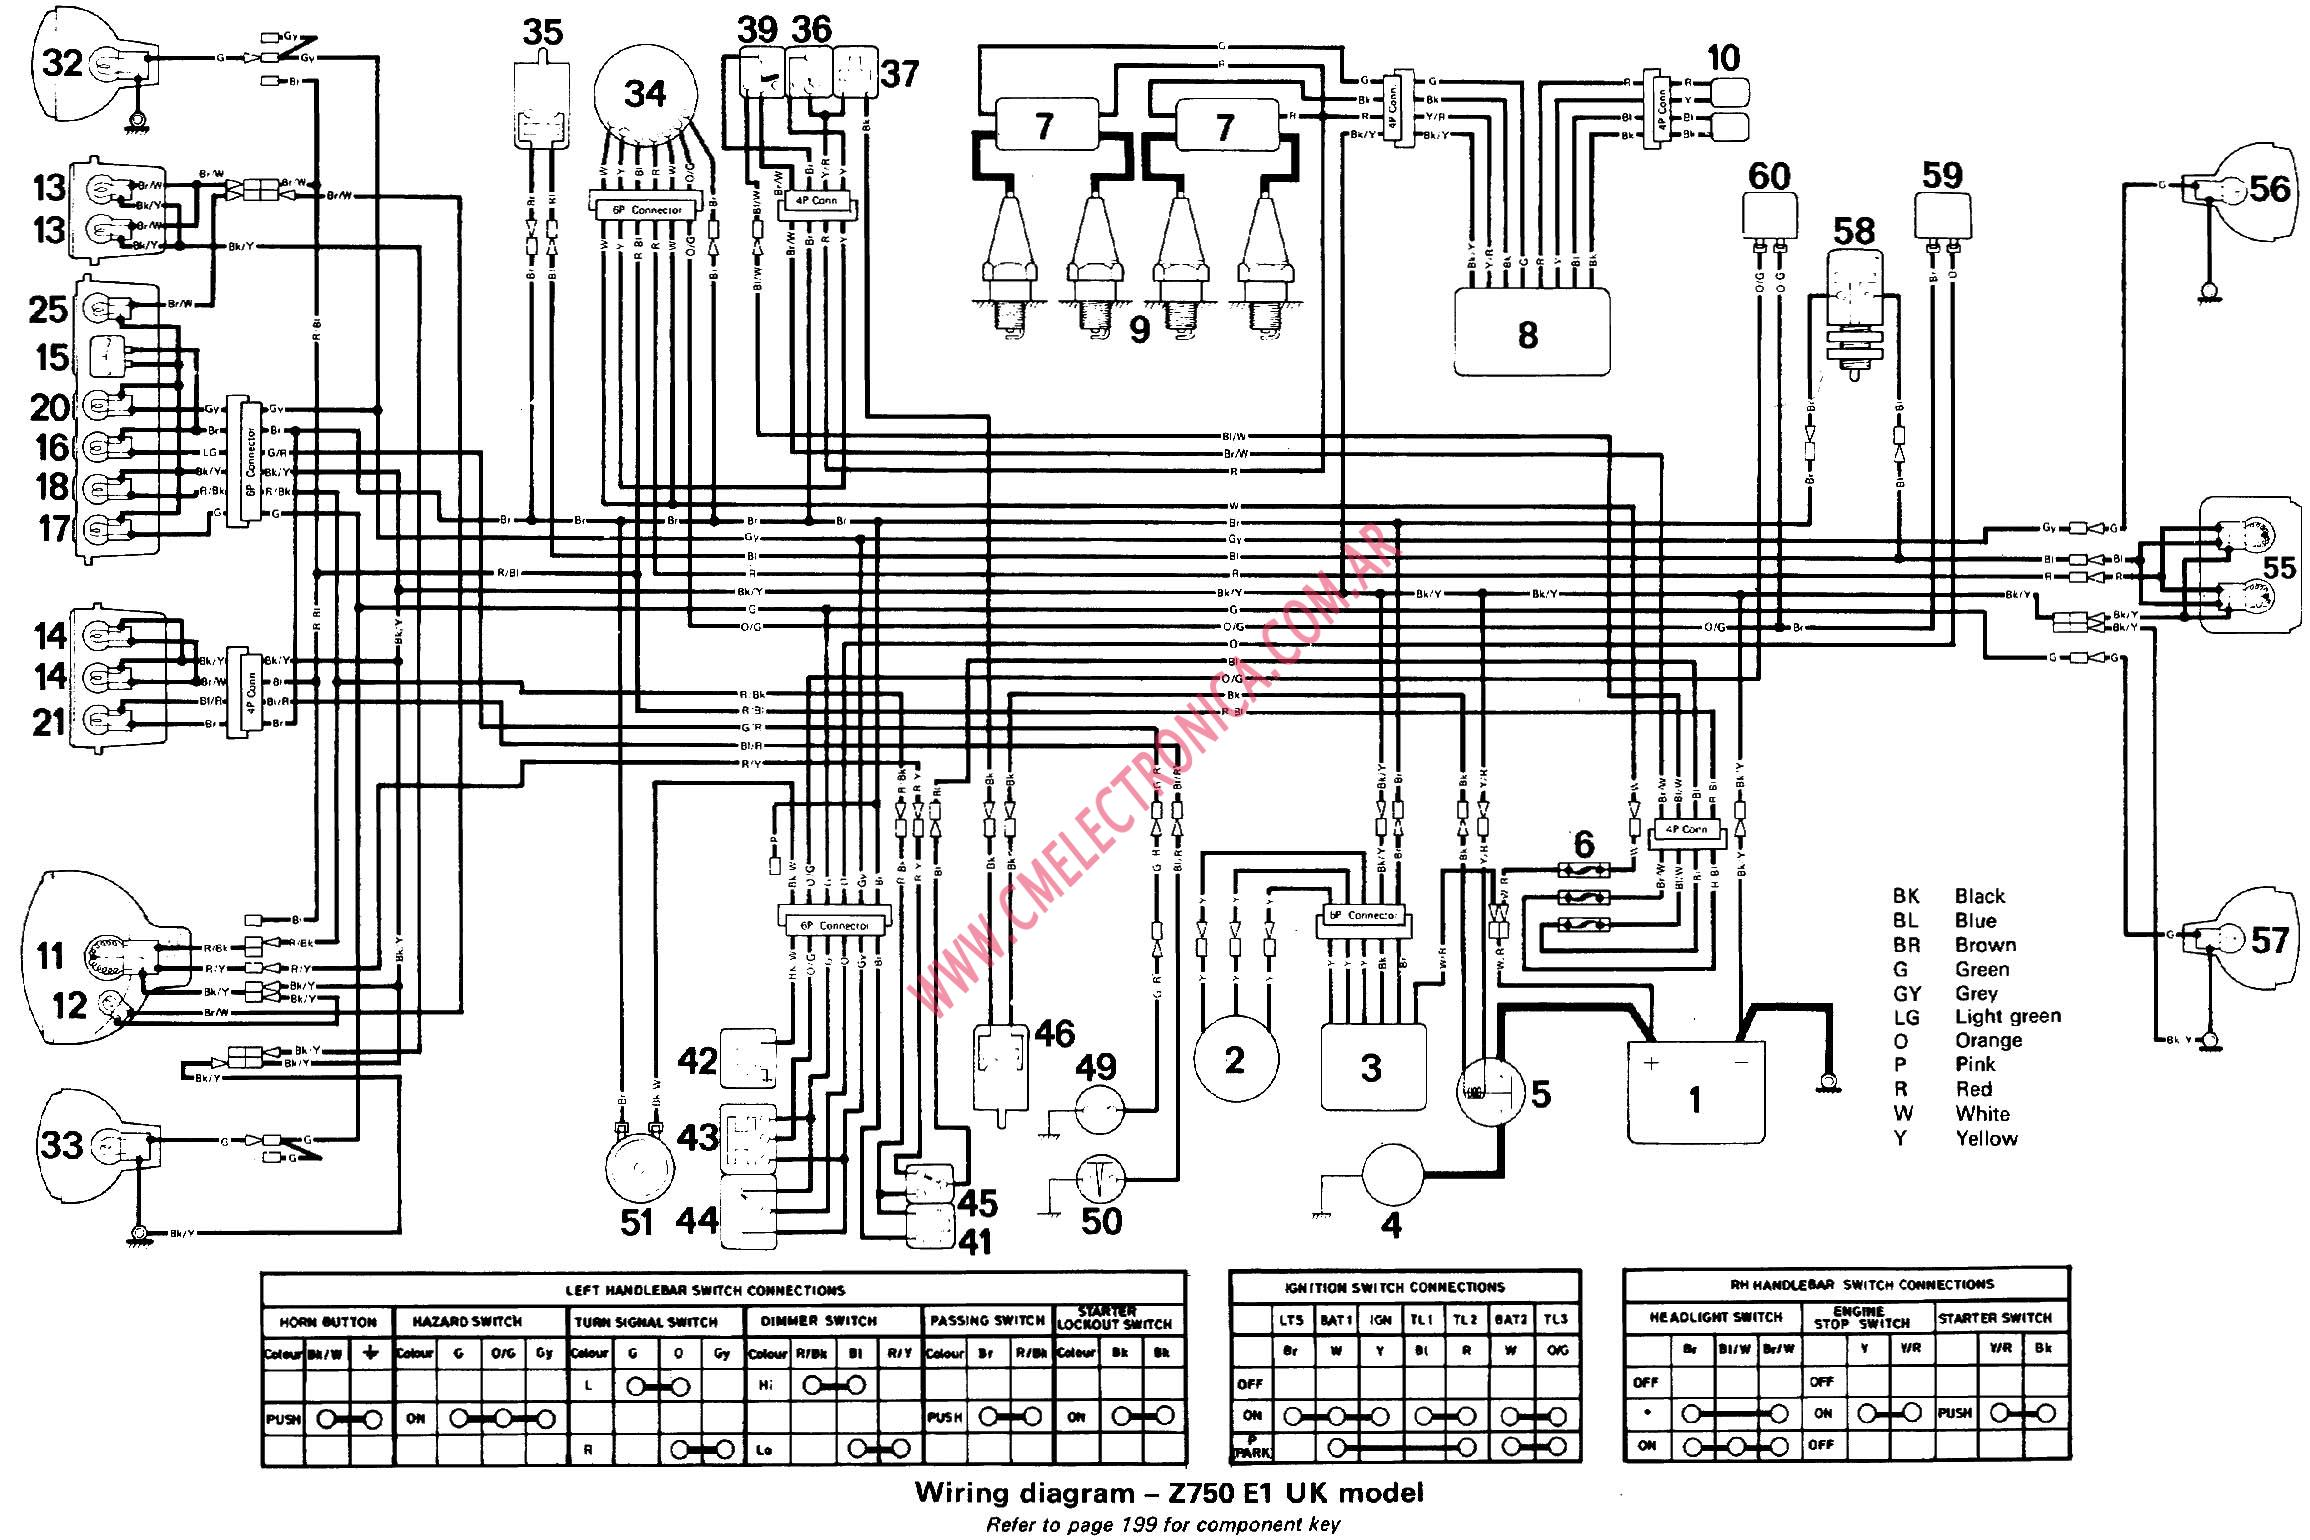 Kawasaki Z 750 Wiring Diagram - New Wiring Diagram on honda motorcycle repair diagrams, electrical diagrams, pinout diagrams, engine diagrams, troubleshooting diagrams, lighting diagrams, motor diagrams, switch diagrams, smart car diagrams, gmc fuse box diagrams, internet of things diagrams, hvac diagrams, sincgars radio configurations diagrams, series and parallel circuits diagrams, electronic circuit diagrams, friendship bracelet diagrams, led circuit diagrams, battery diagrams, transformer diagrams,